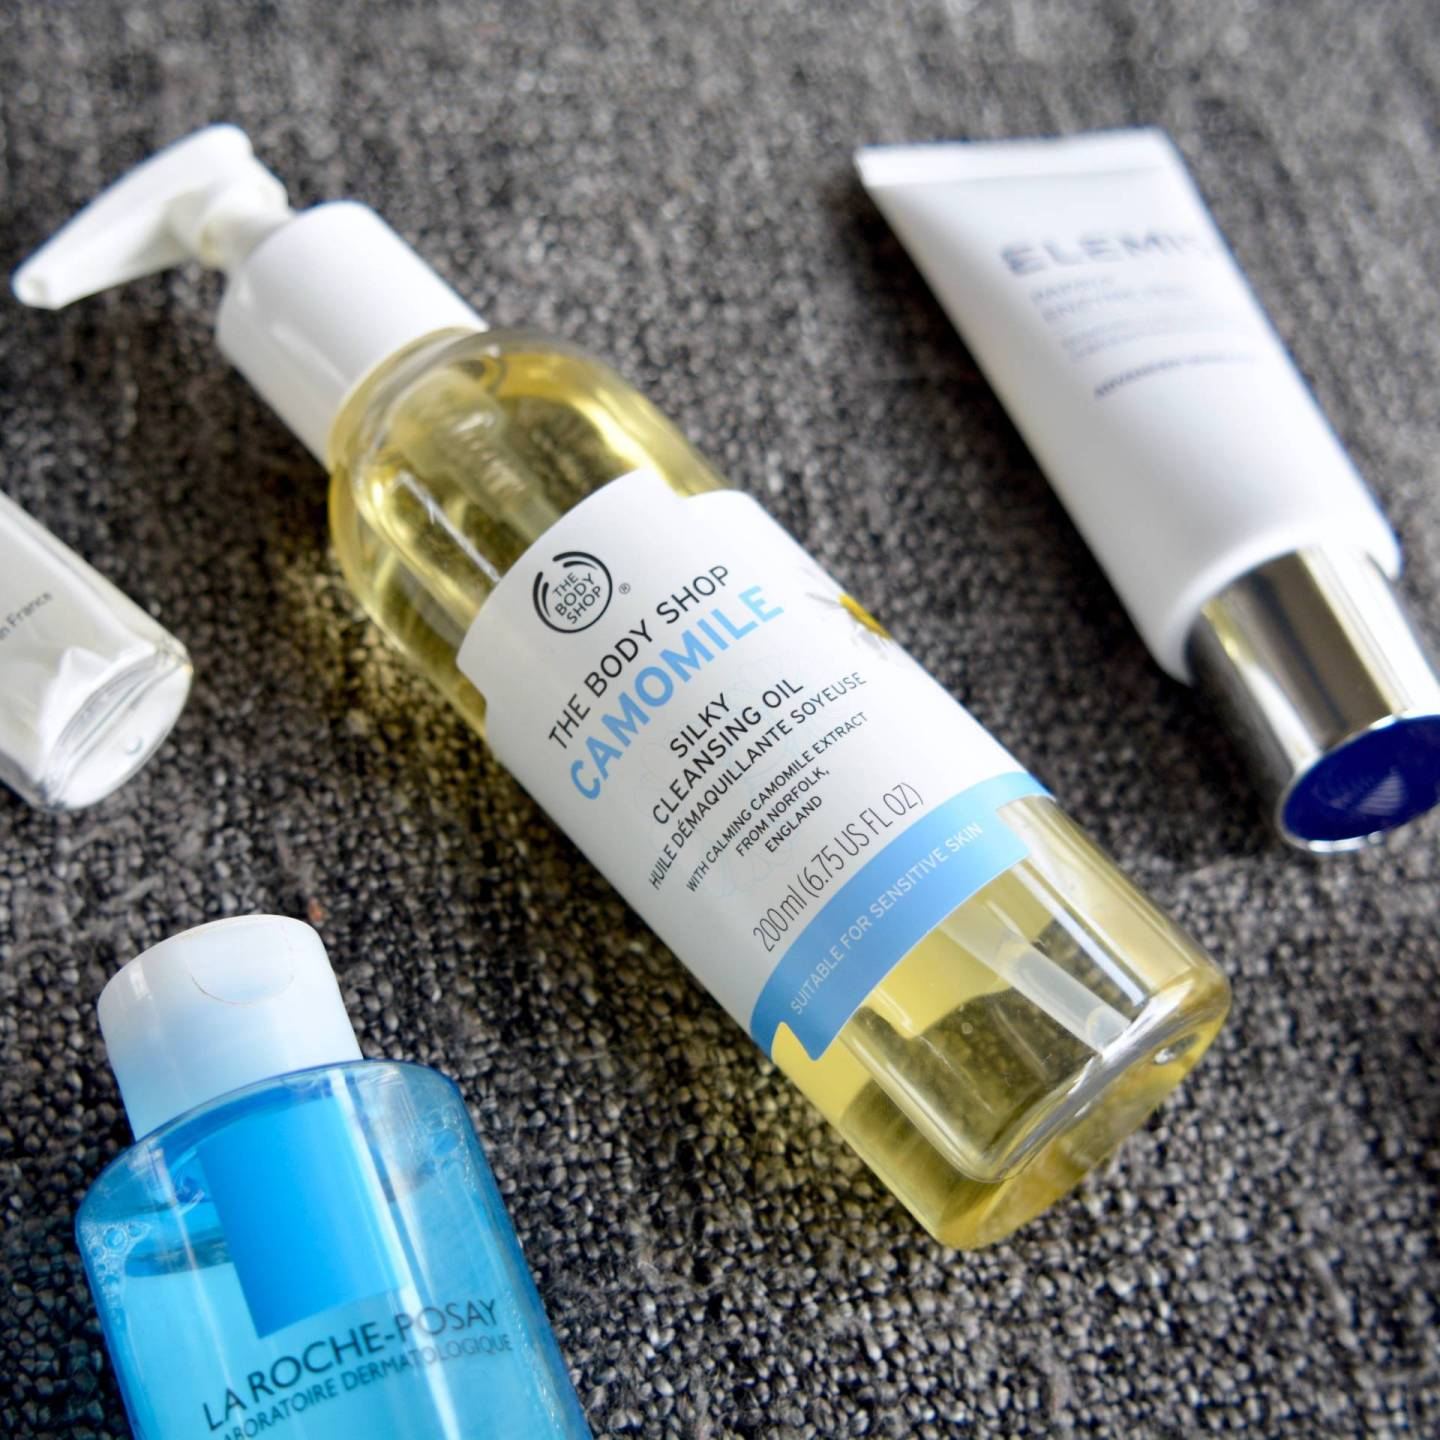 Skincare Shake Up, October 2016: All of the skincare I've been using recently that helps my sensitive skin and rosacea. The Body Shop Camomile Cleansing Oil.